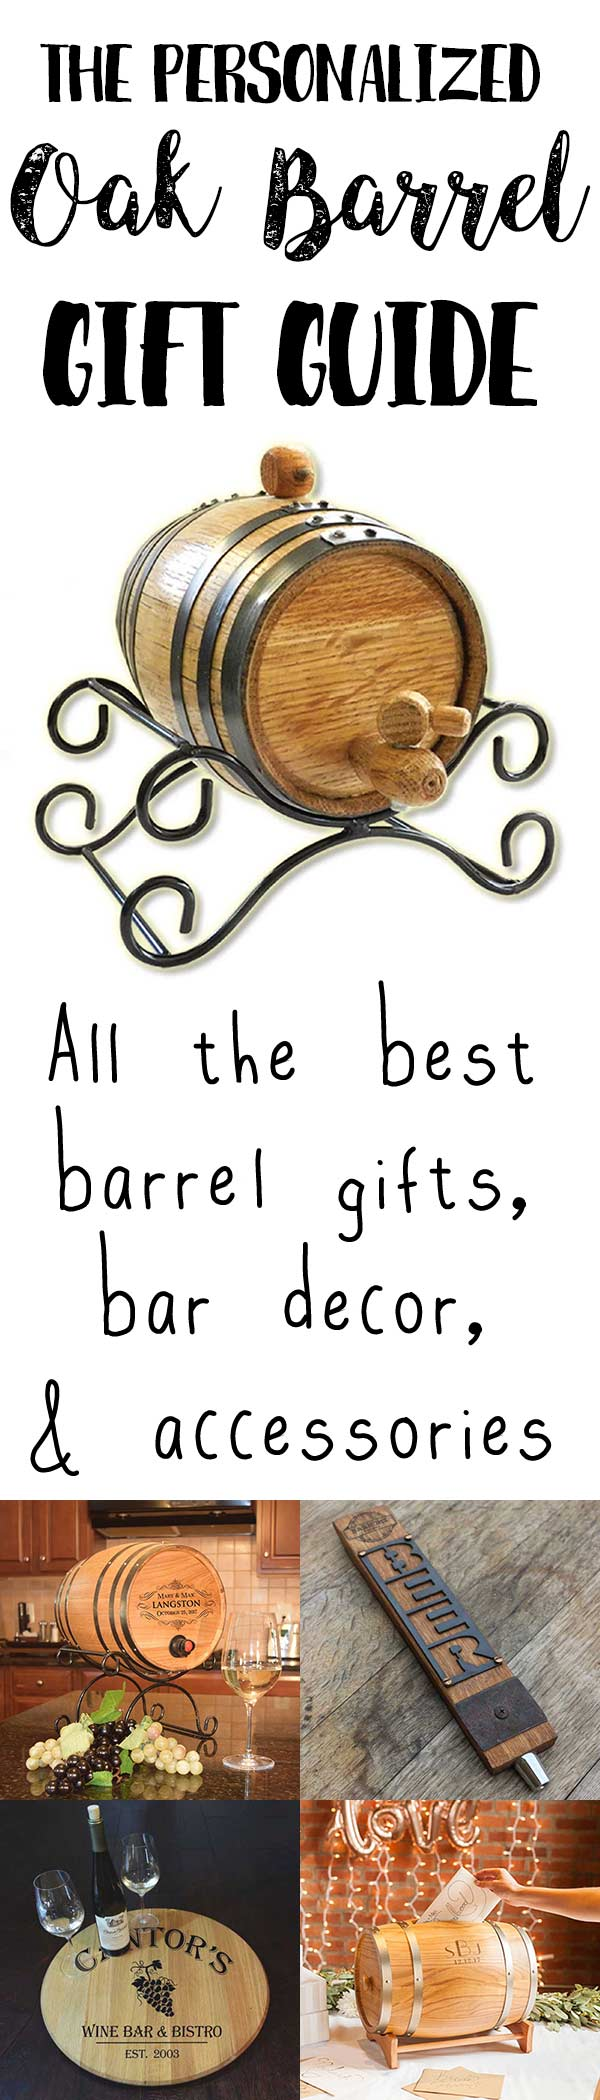 Guide to Gifting Barrels